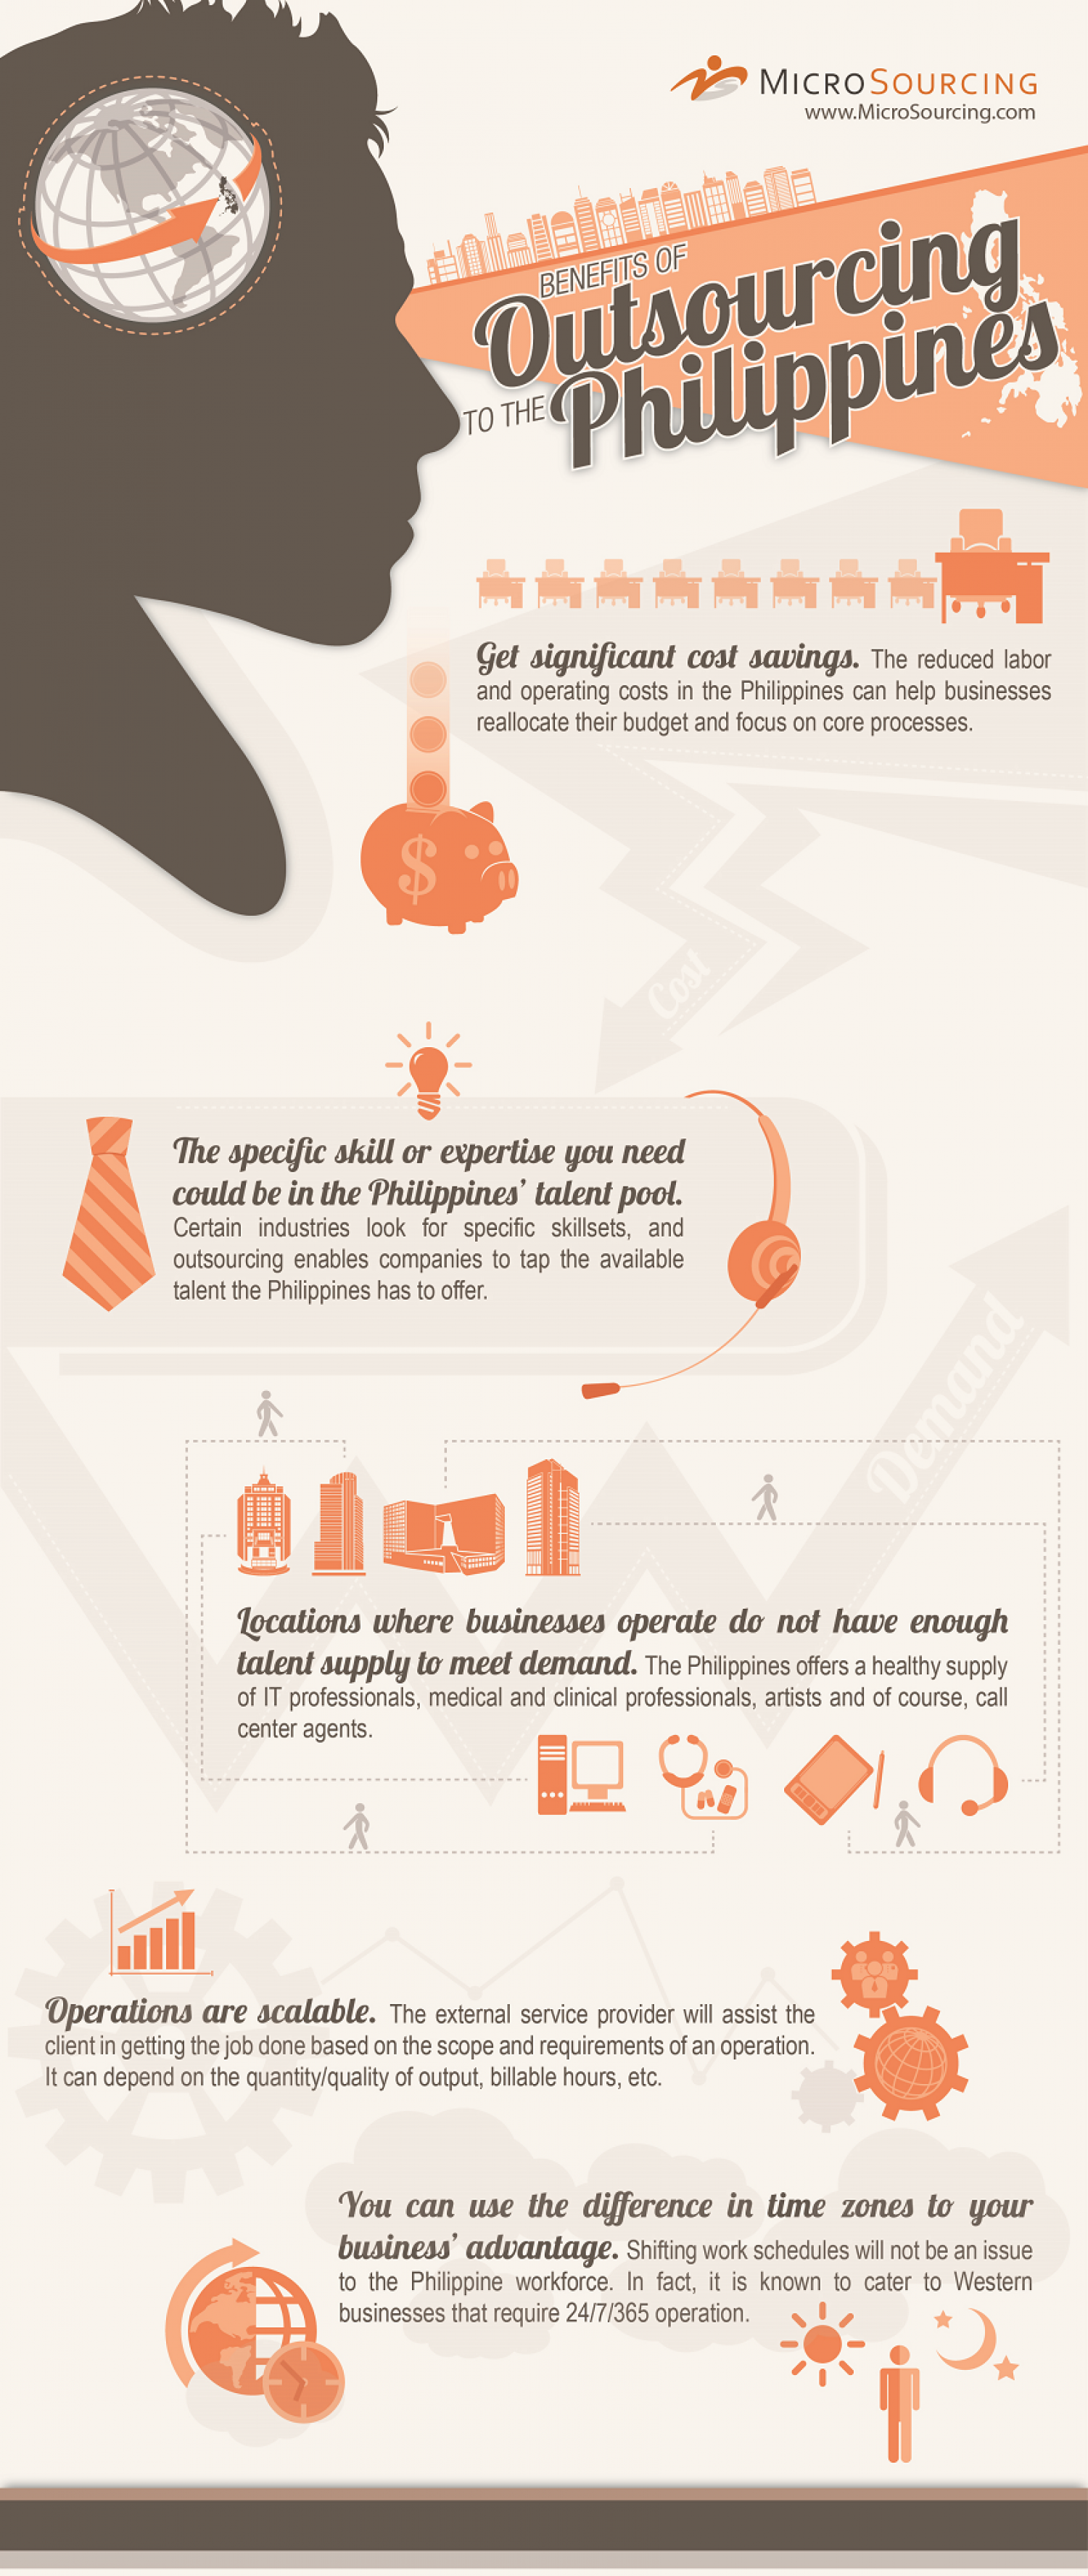 Benefits of Outsourcing to the Philippines Infographic